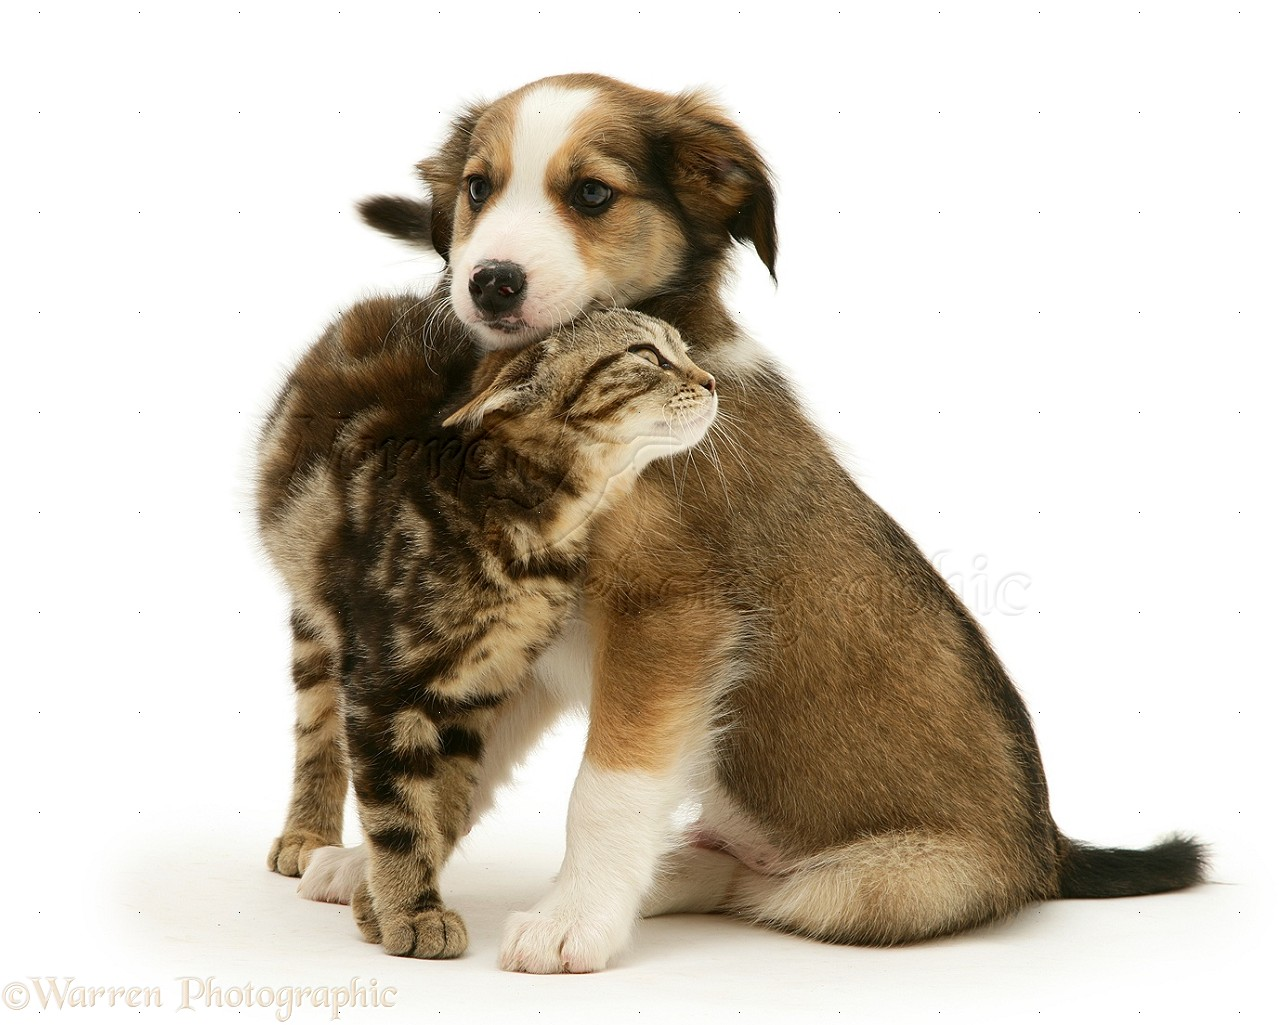 Pets Tabby Kitten And Border Collie Pup Photo Wp20593